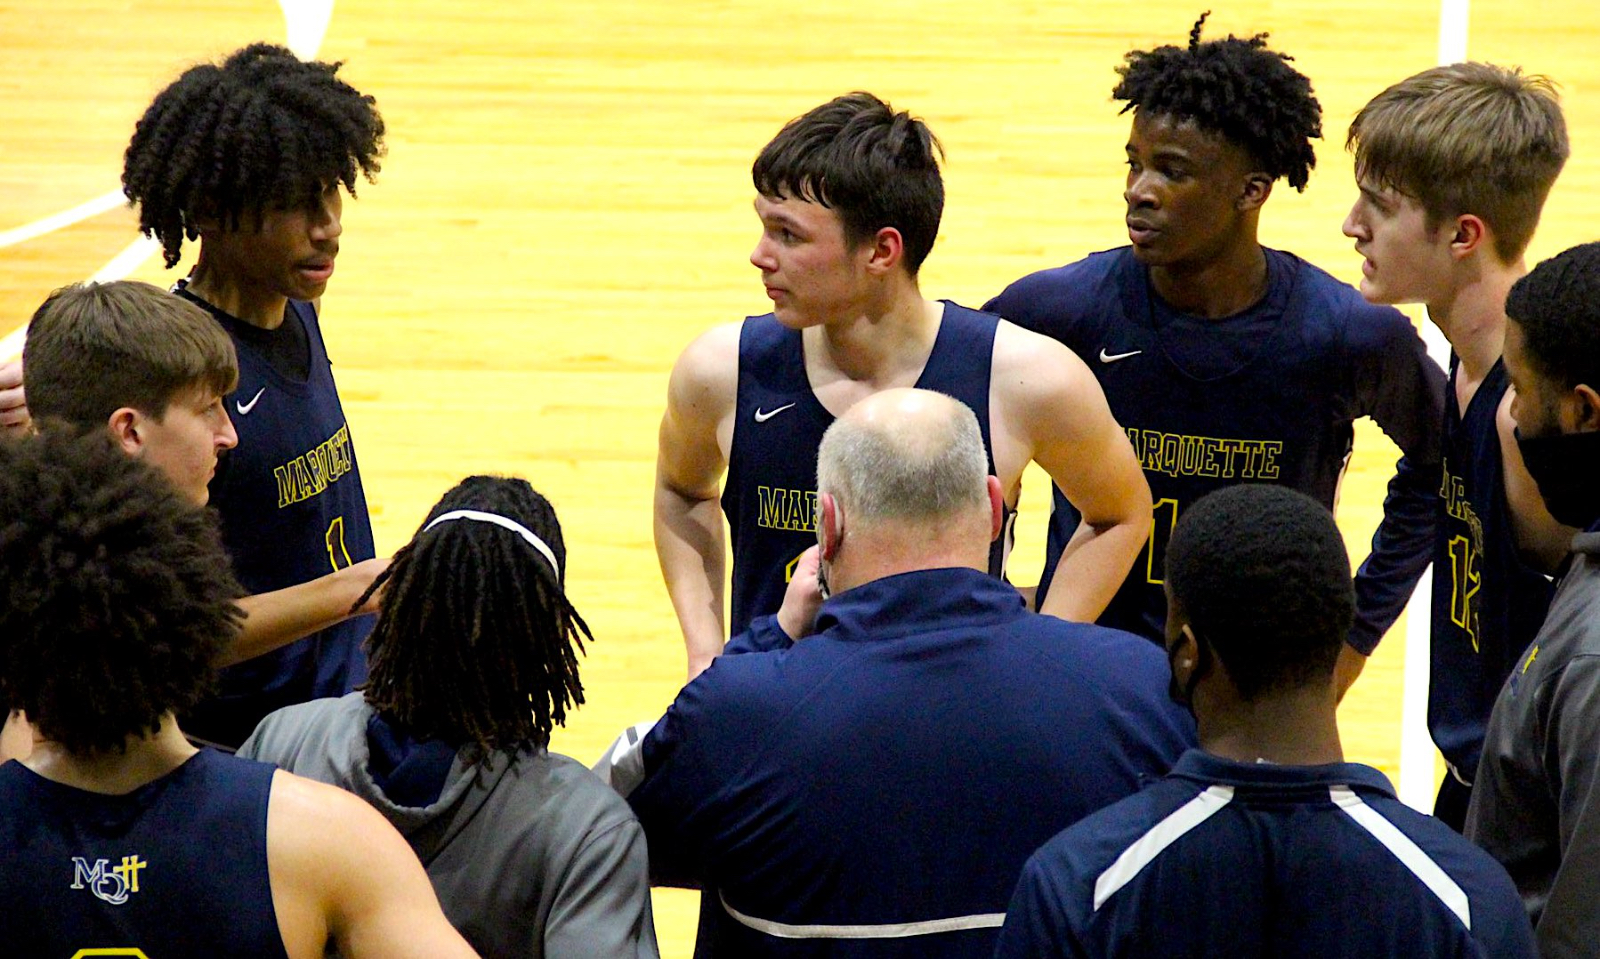 Marquette Falls to Eagles in Sectional 33 Final